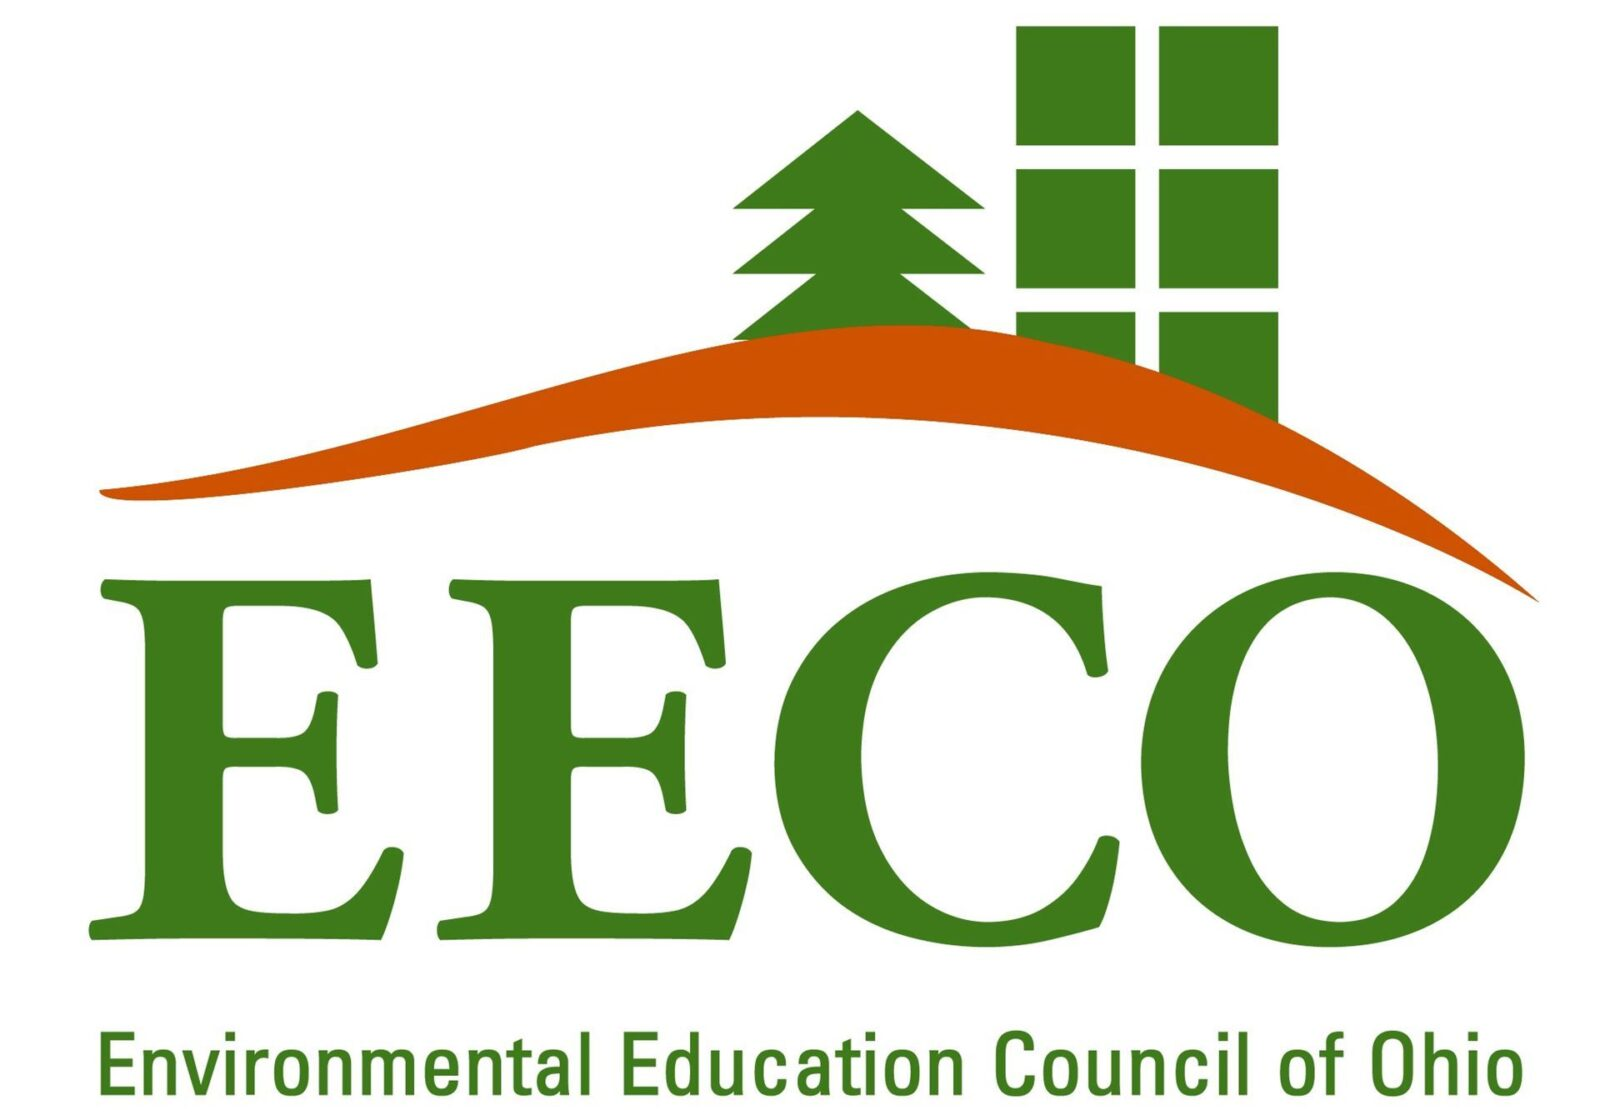 Environmental Education Council of Ohio